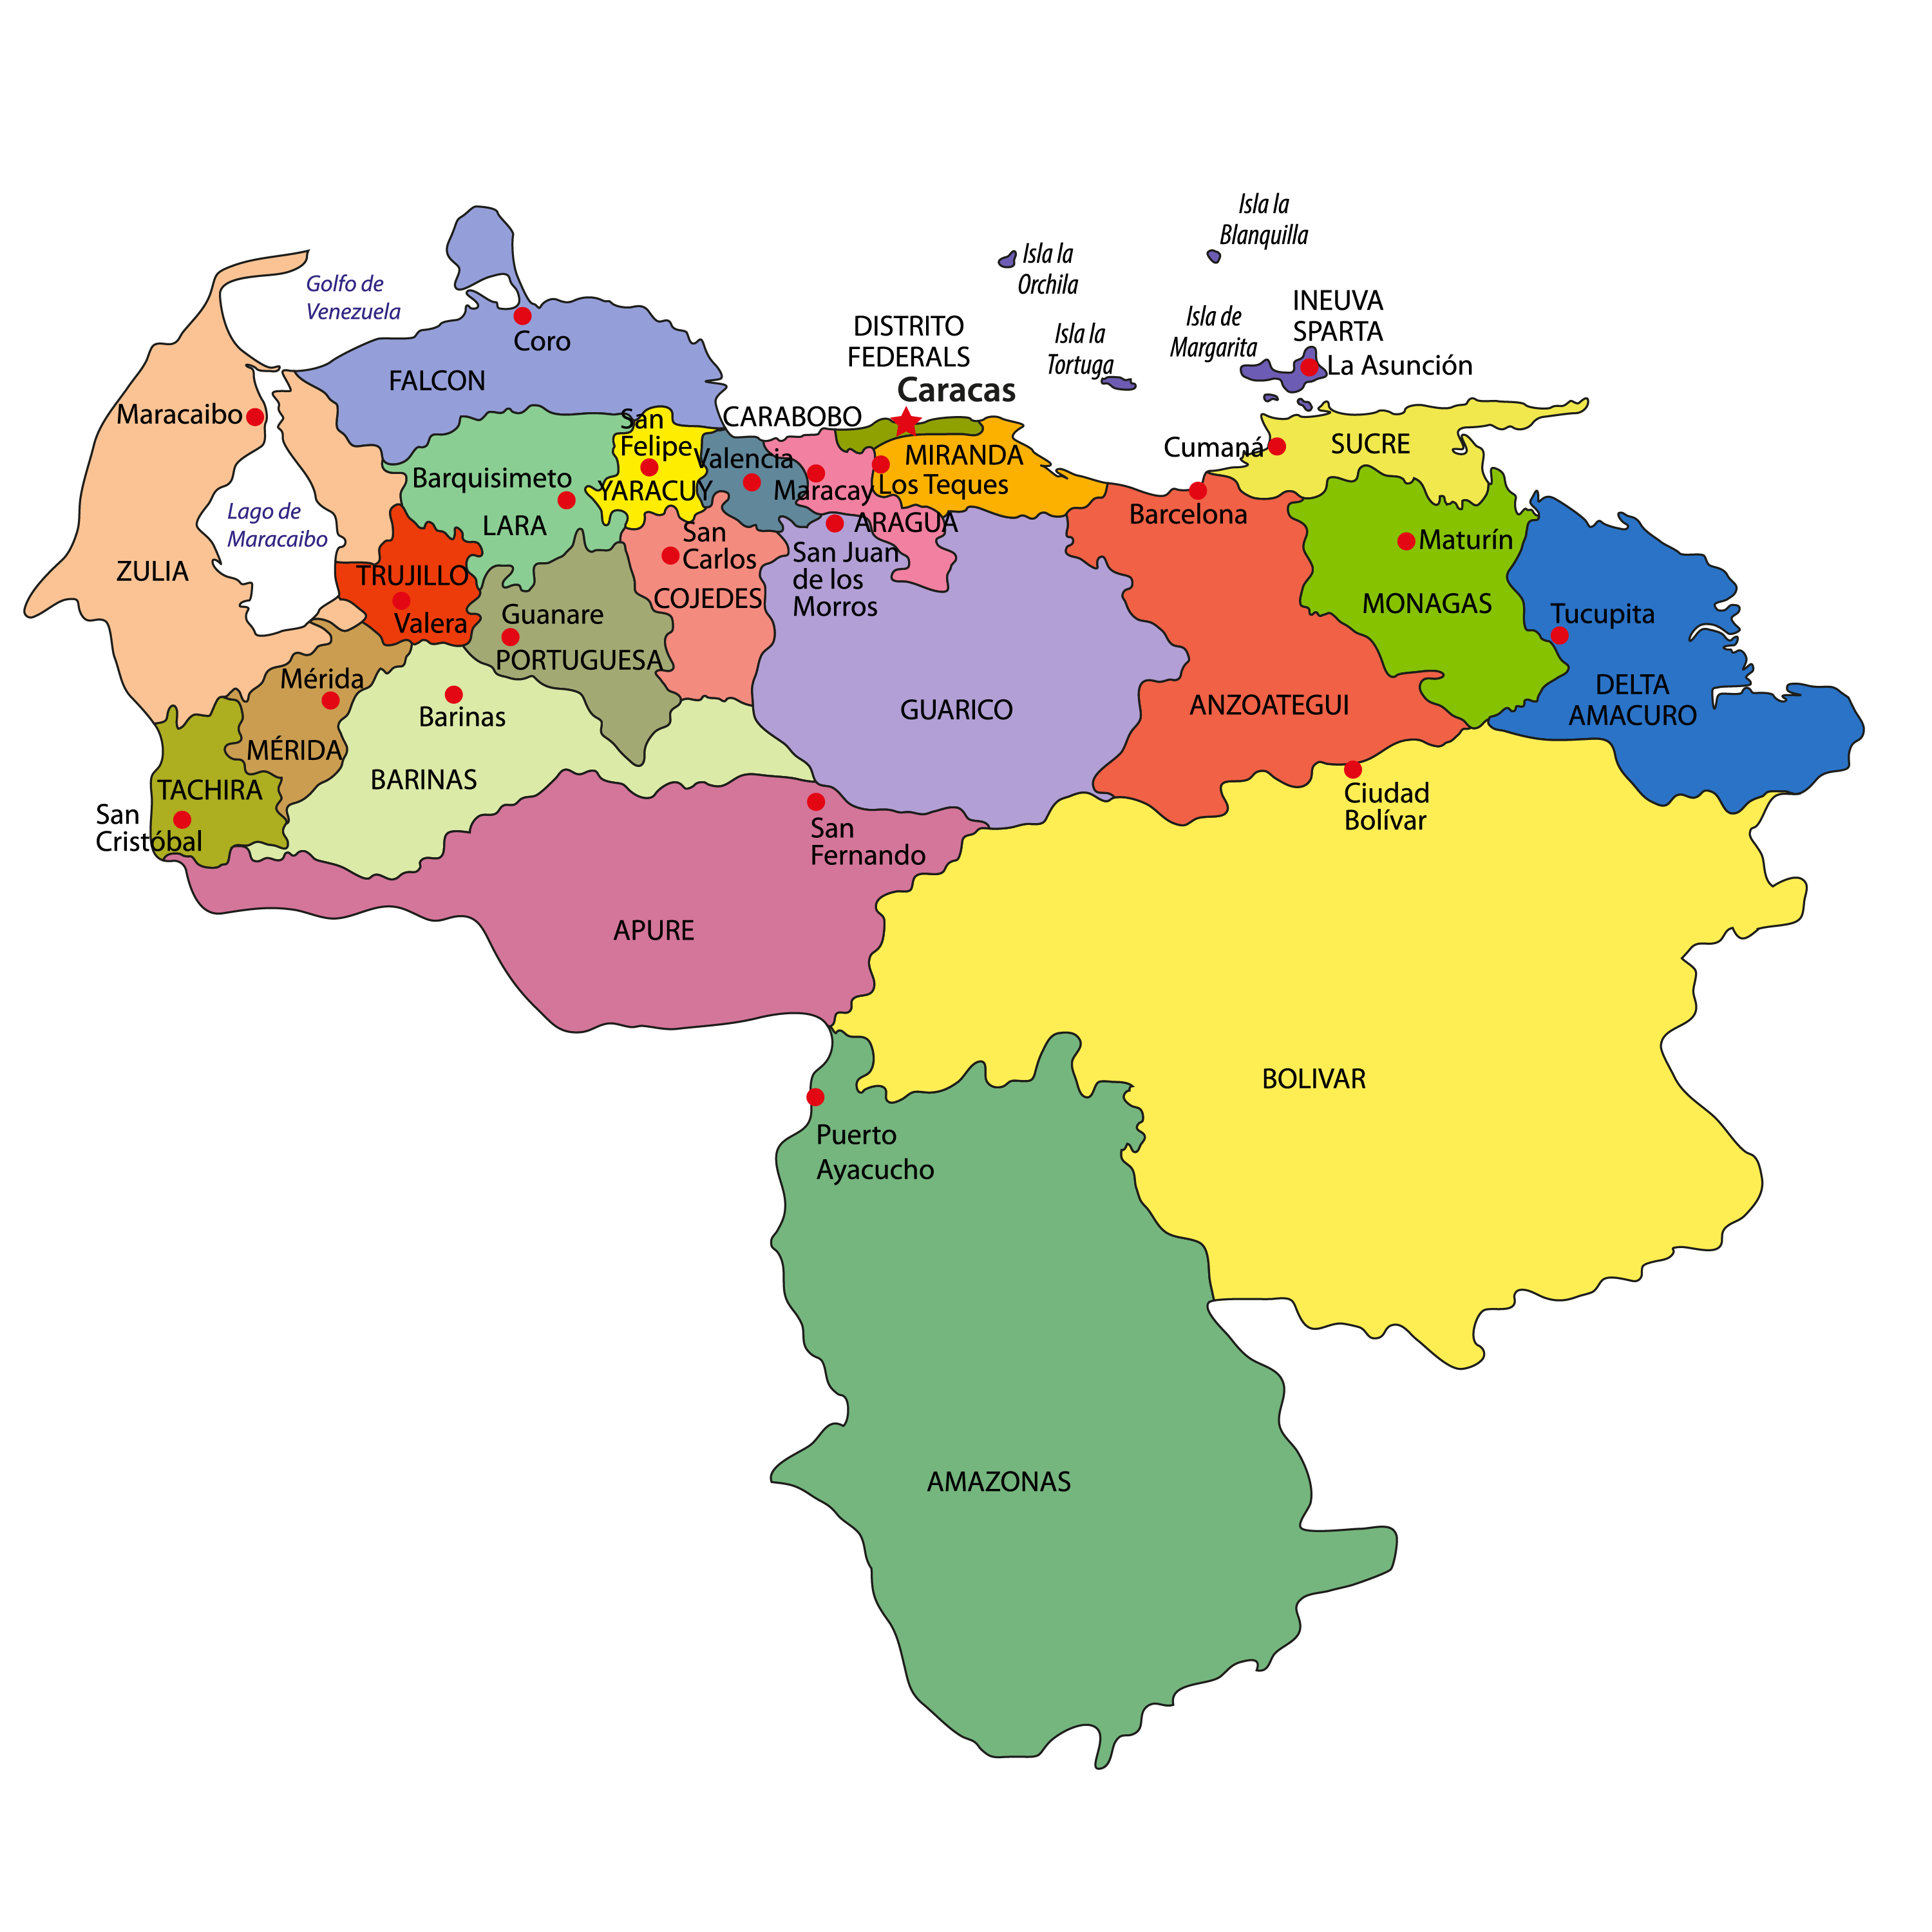 Political Map of Venezuela showing its 23 states, 1 capital district and the Federal Dependencies and the capital city - Caracas